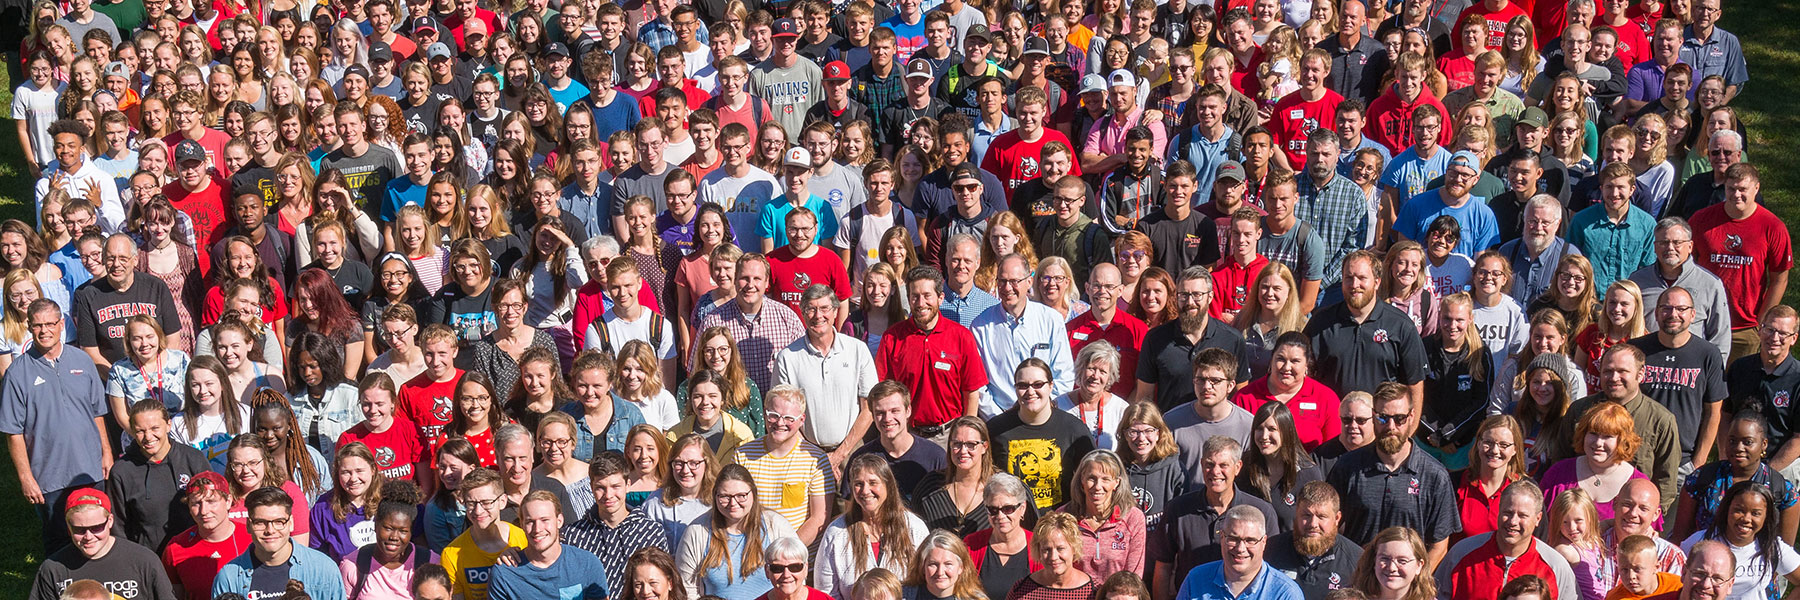 large crowd of people together looking right at camera on a sunny day